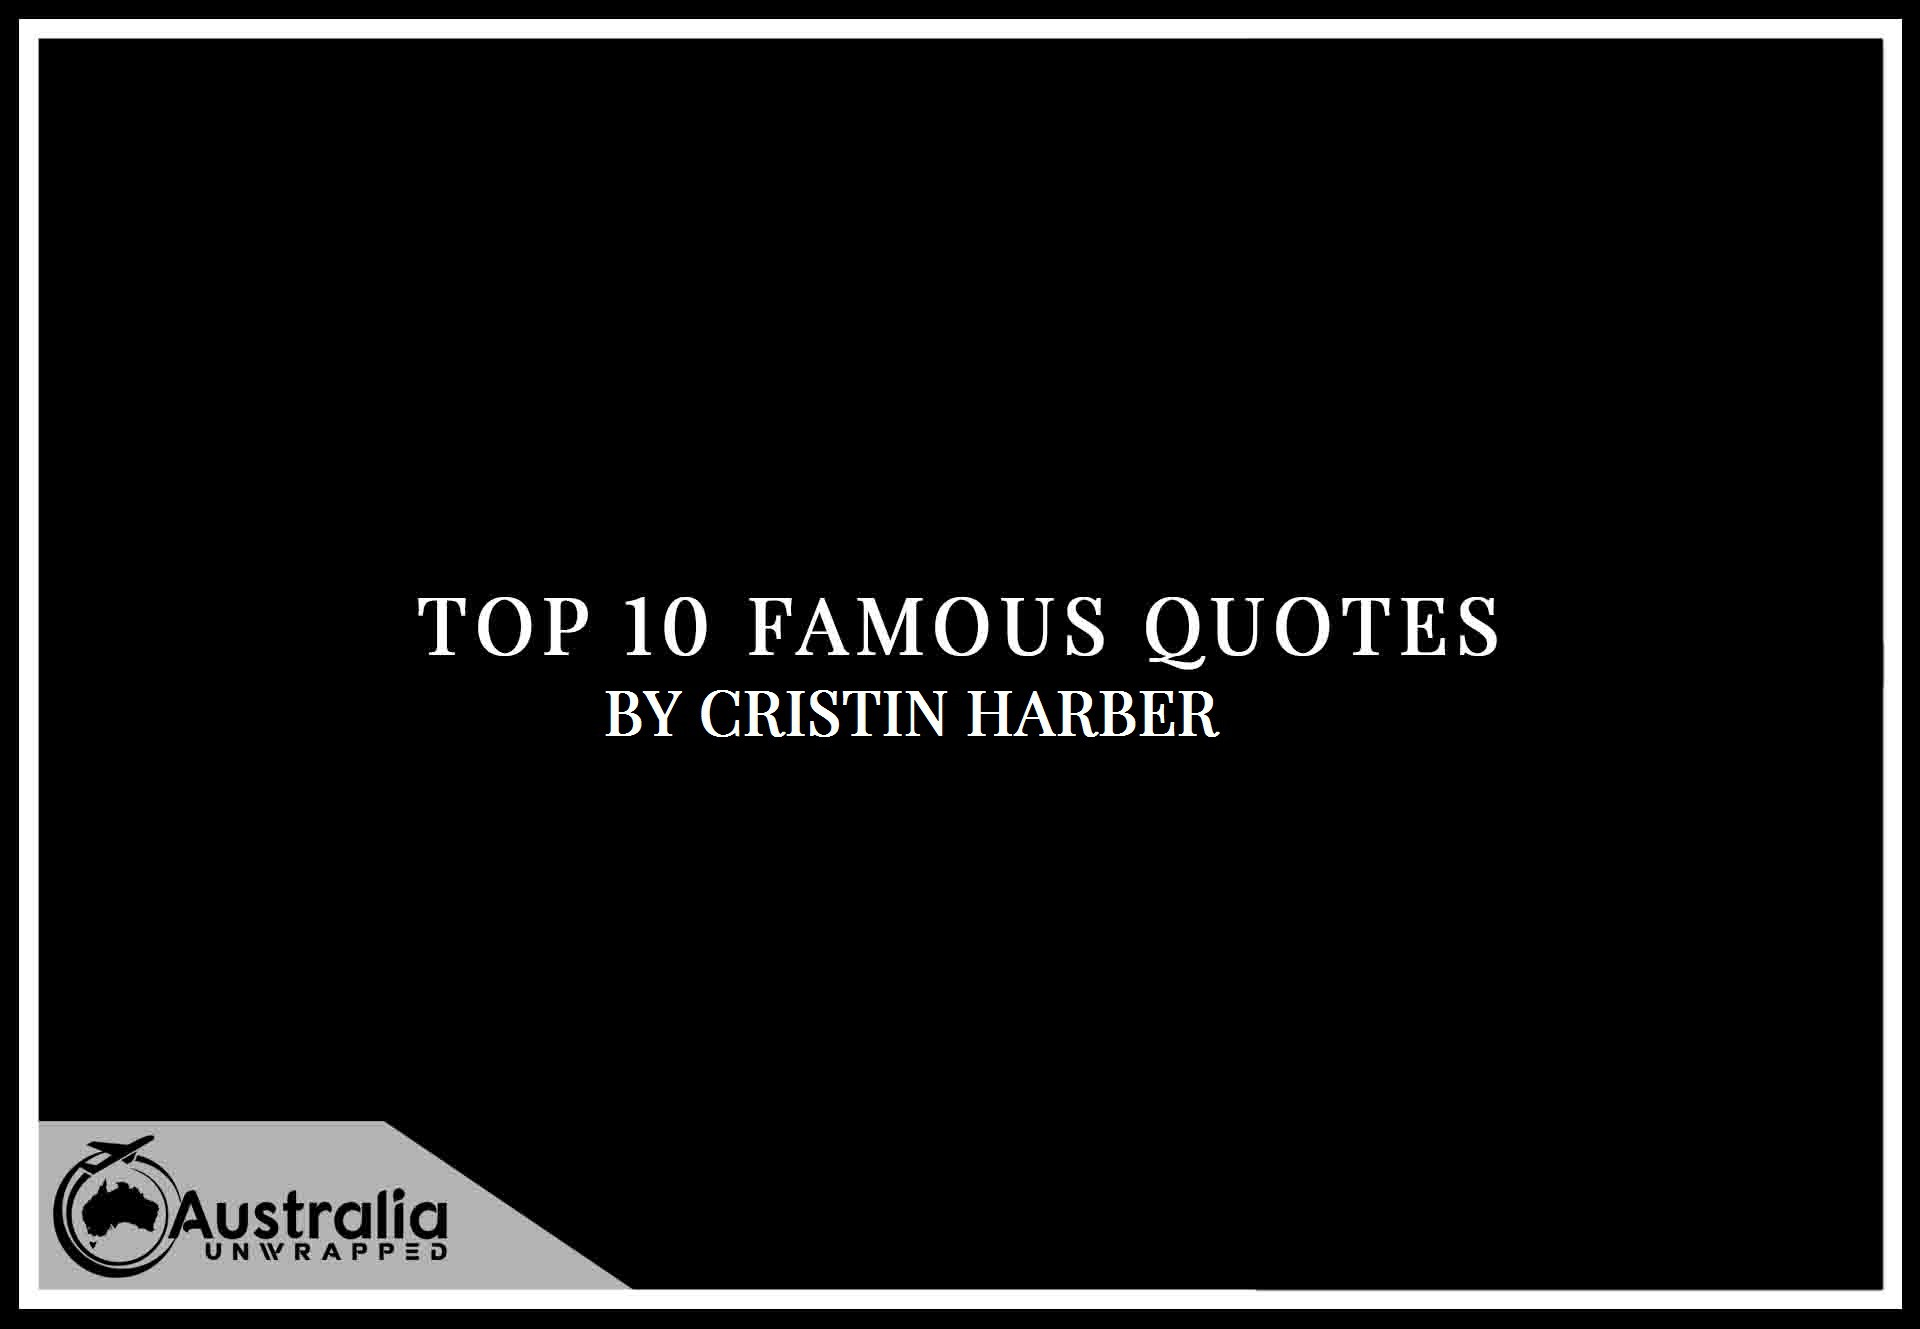 Cristin Harber's Top 10 Popular and Famous Quotes